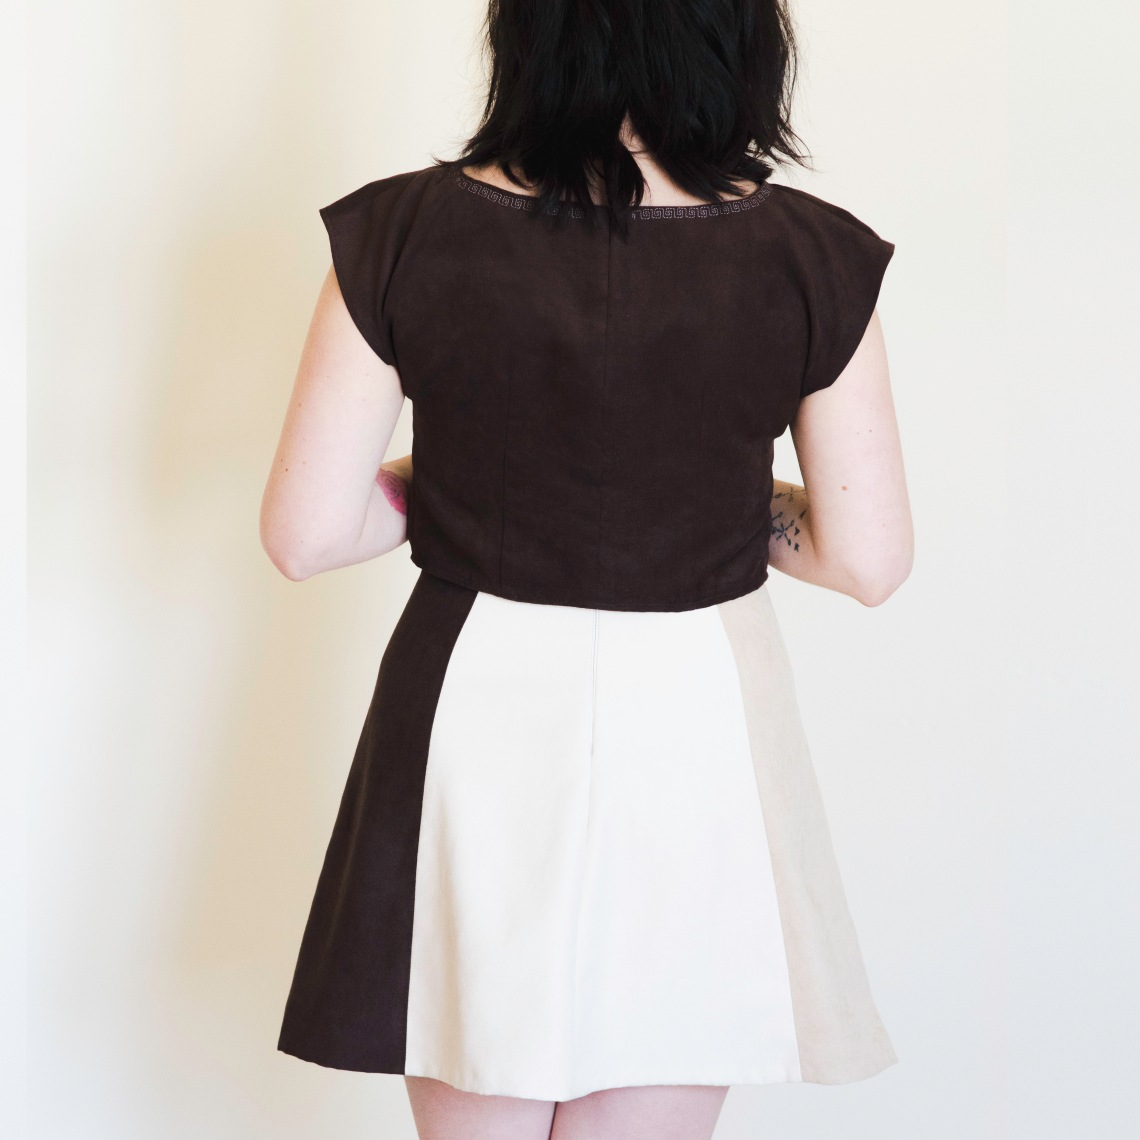 vegan-suede-skirt-top-08